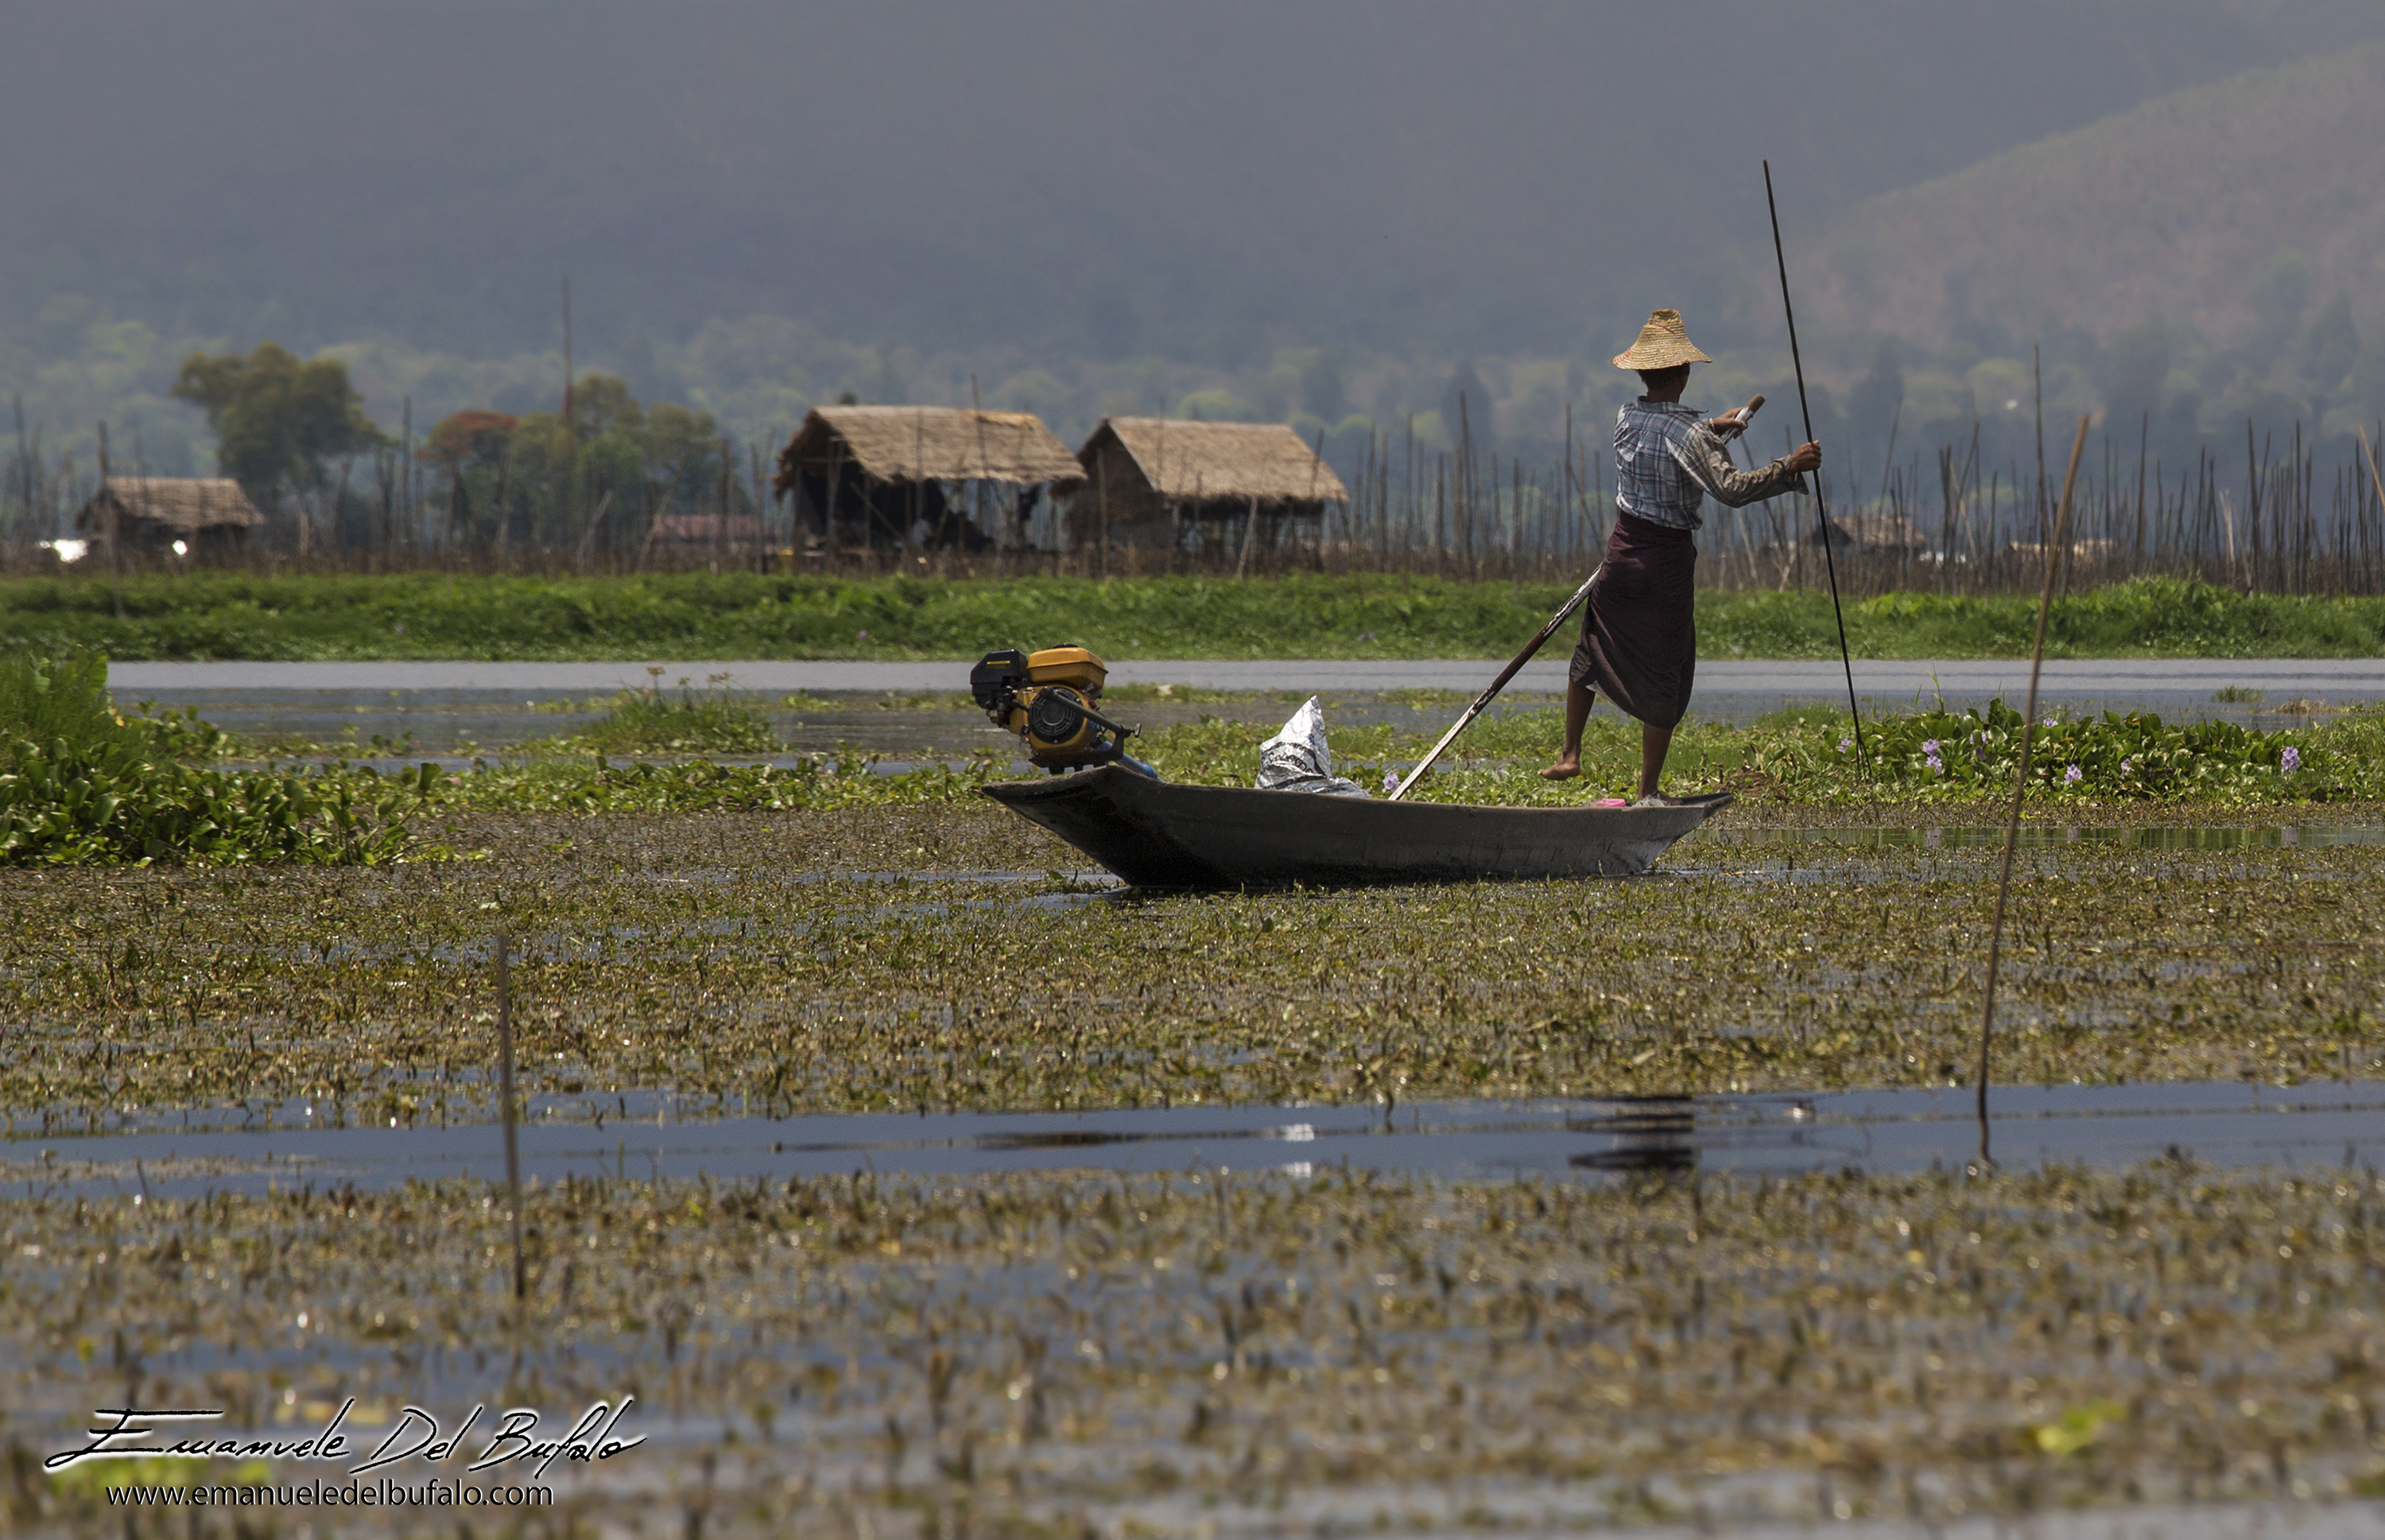 www.emanueledelbufalo.com #myanmar #burma #inle_lake #fisherman #boat #flooting_village #work #peopl